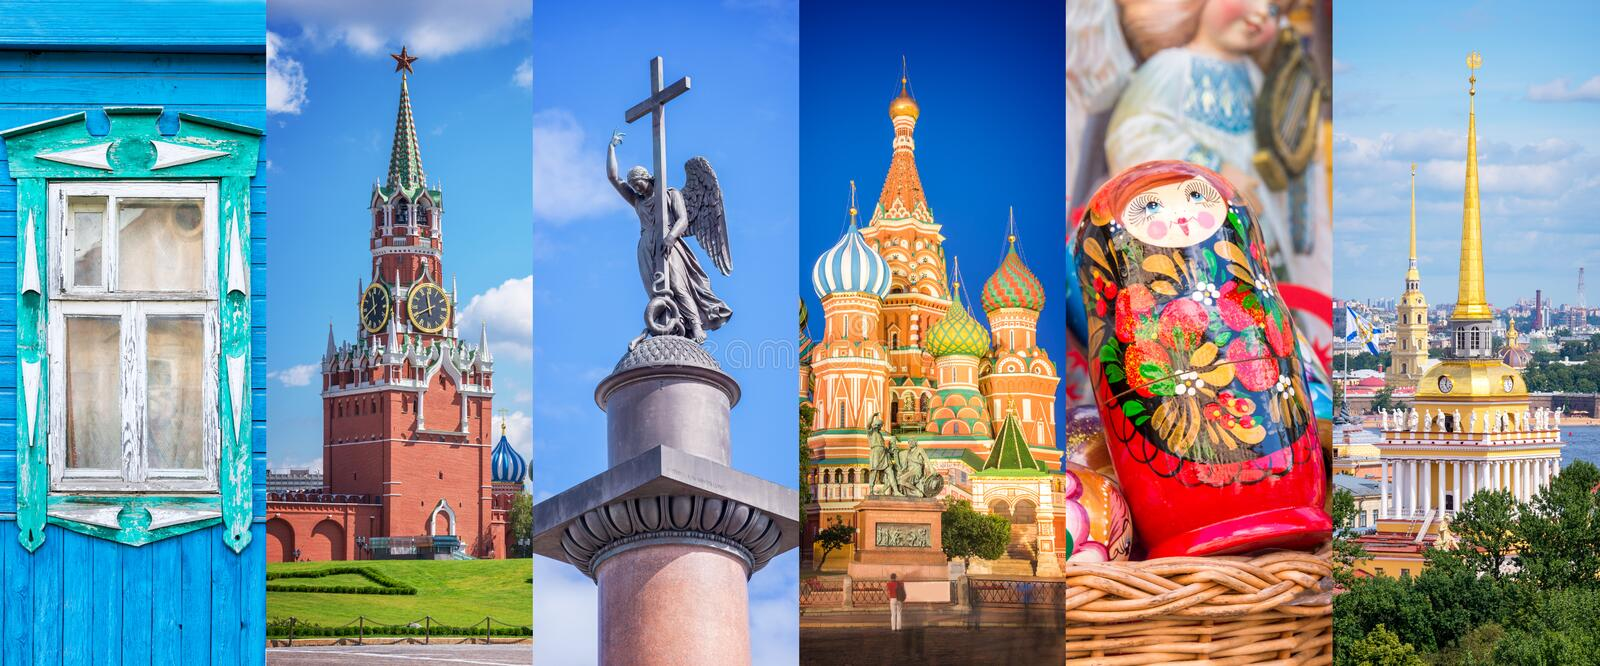 Russia, panoramic photo collage, Russia Saint Petersburg, Moscow landmarks travel and tourism concept royalty free stock photos